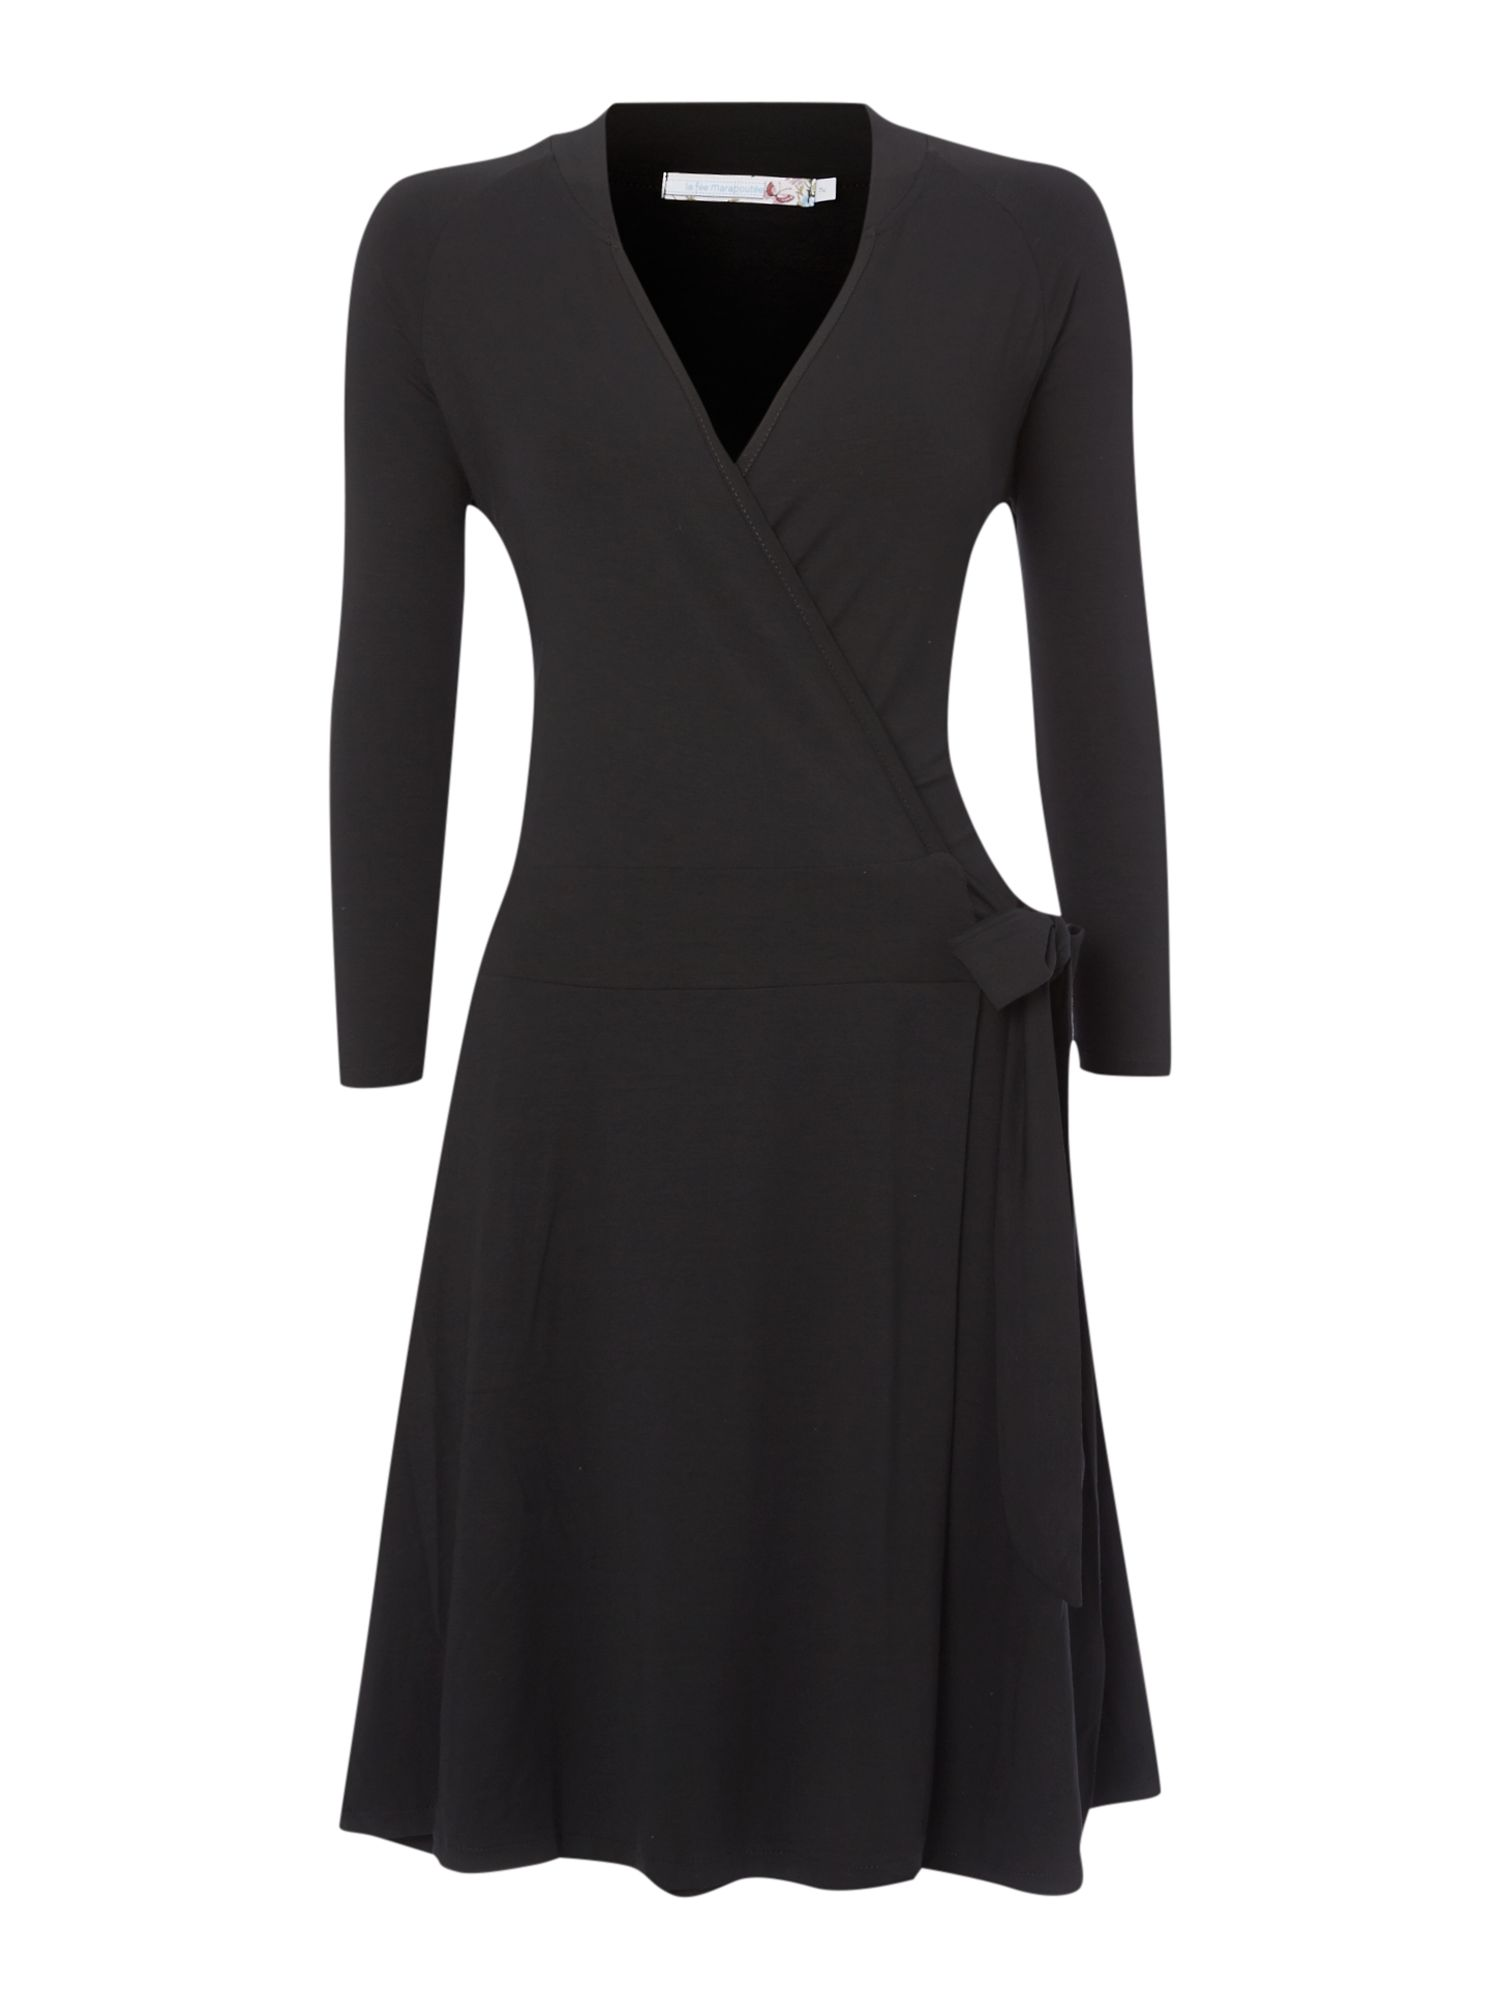 Long-sleeved wrap dress